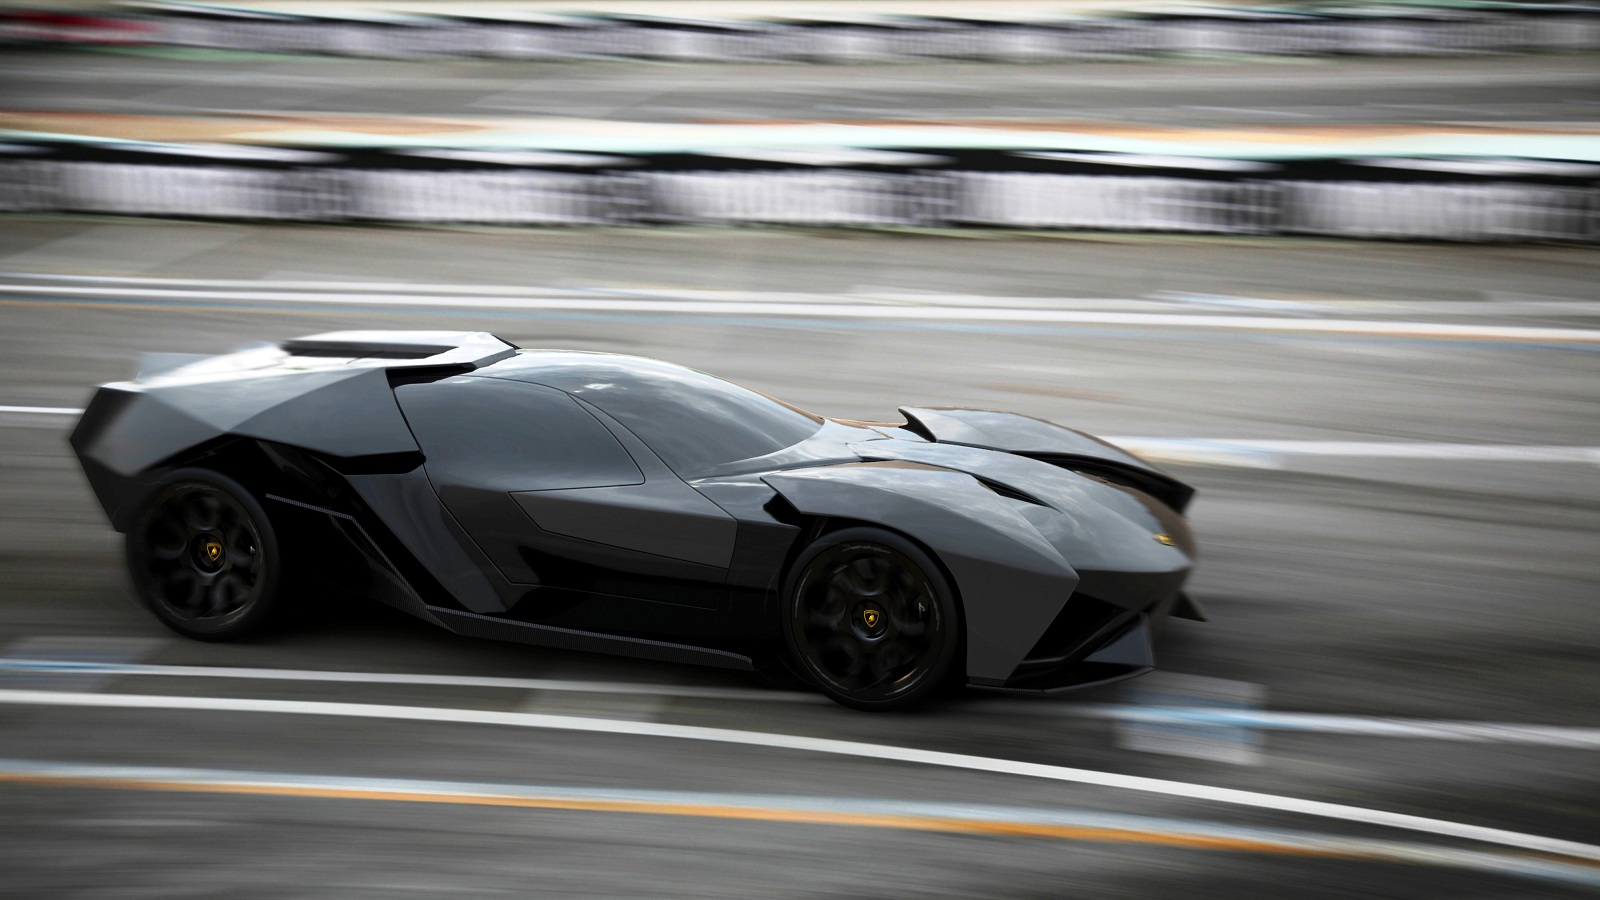 Pictures of Lamborghini Reventon HD, 1600x900 px, 06/03/2016